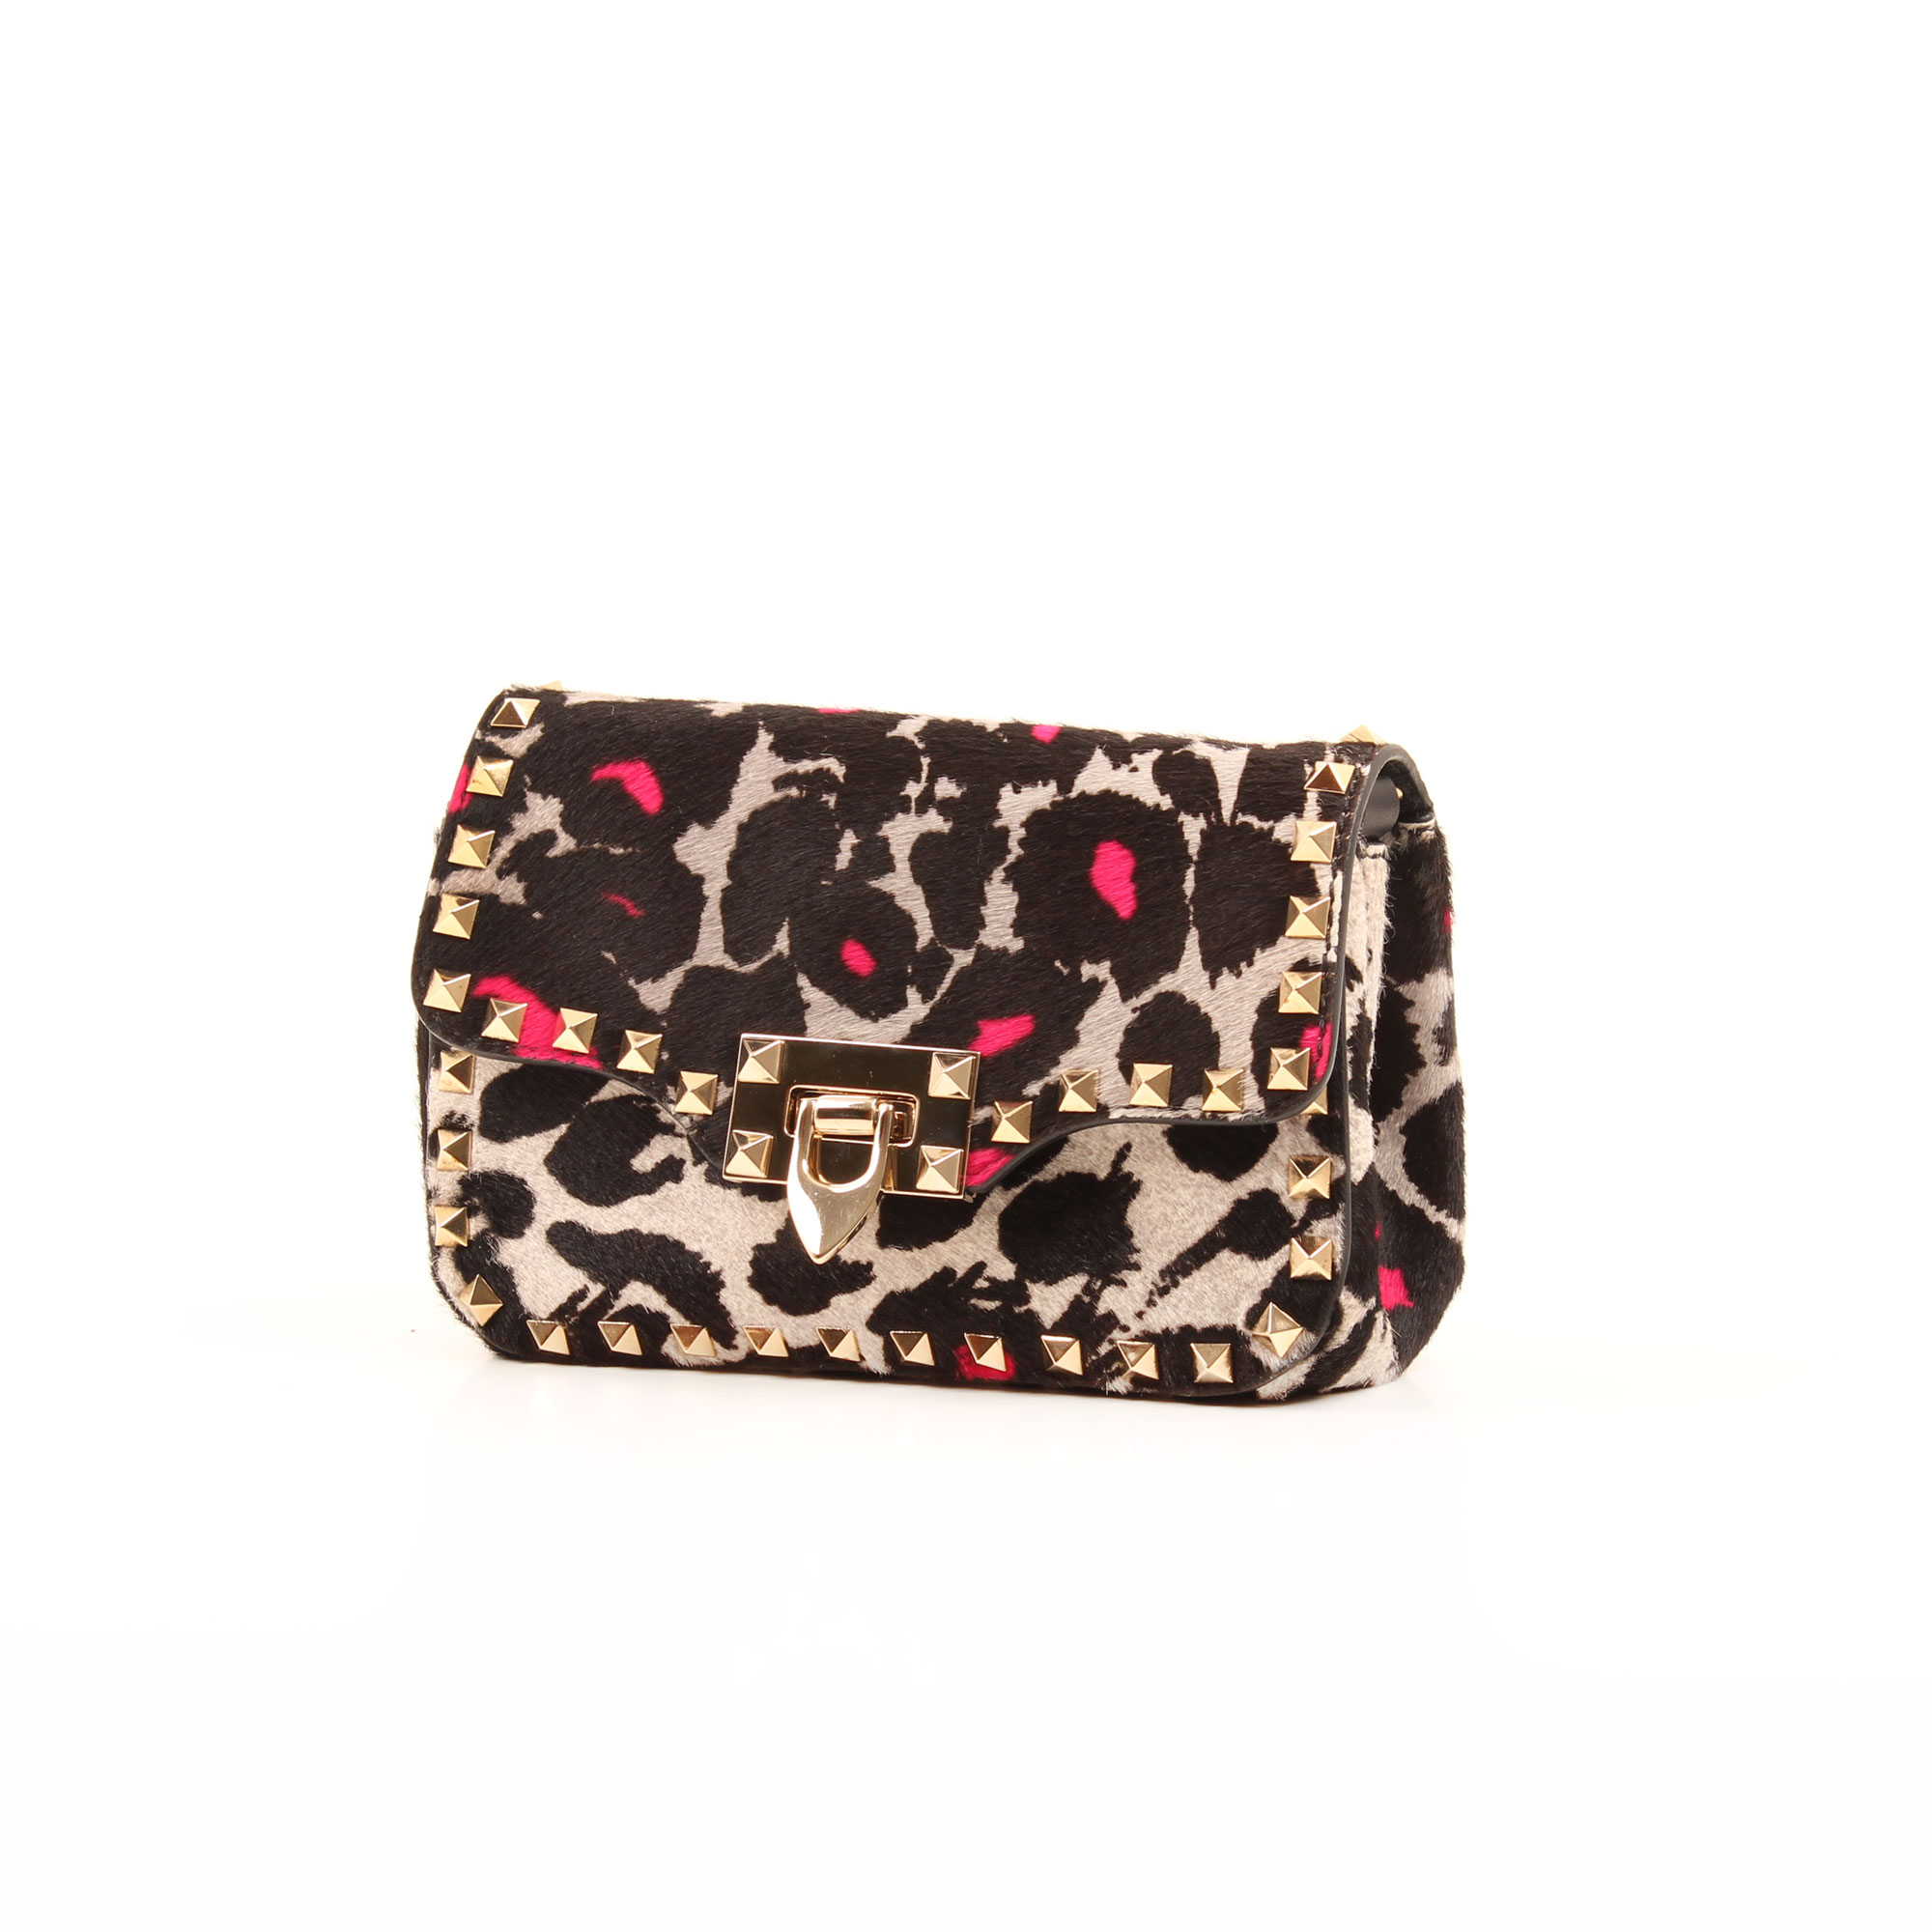 General 2 image of valentino rockstud mini cross body bag leopard print pink hair calf